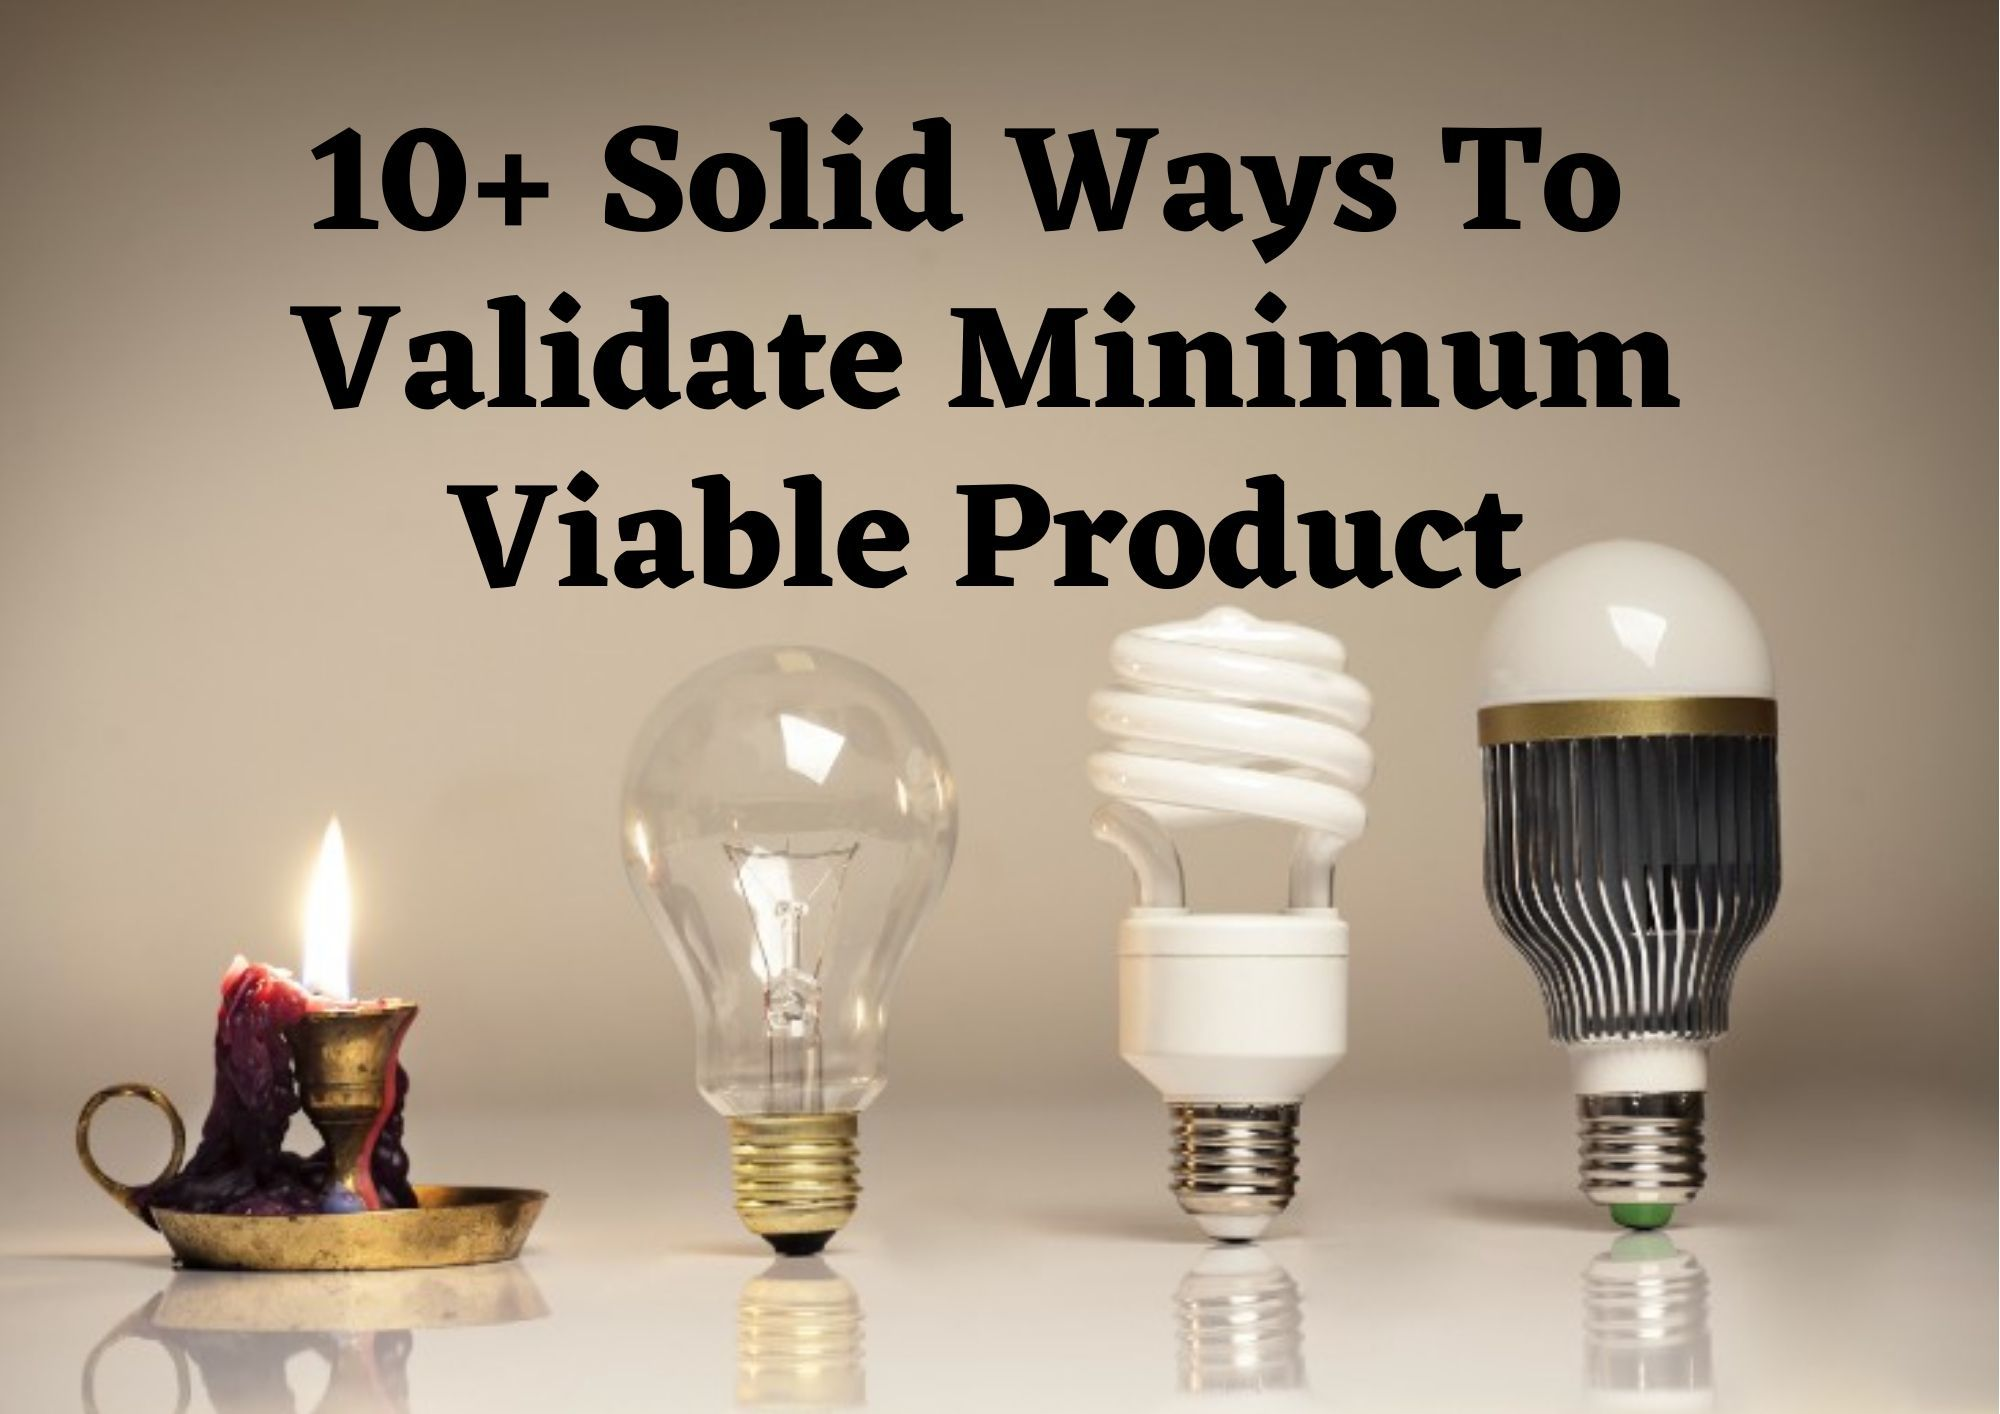 10 Great Ways to Evaluate your Minimum Viable Product (MVP)